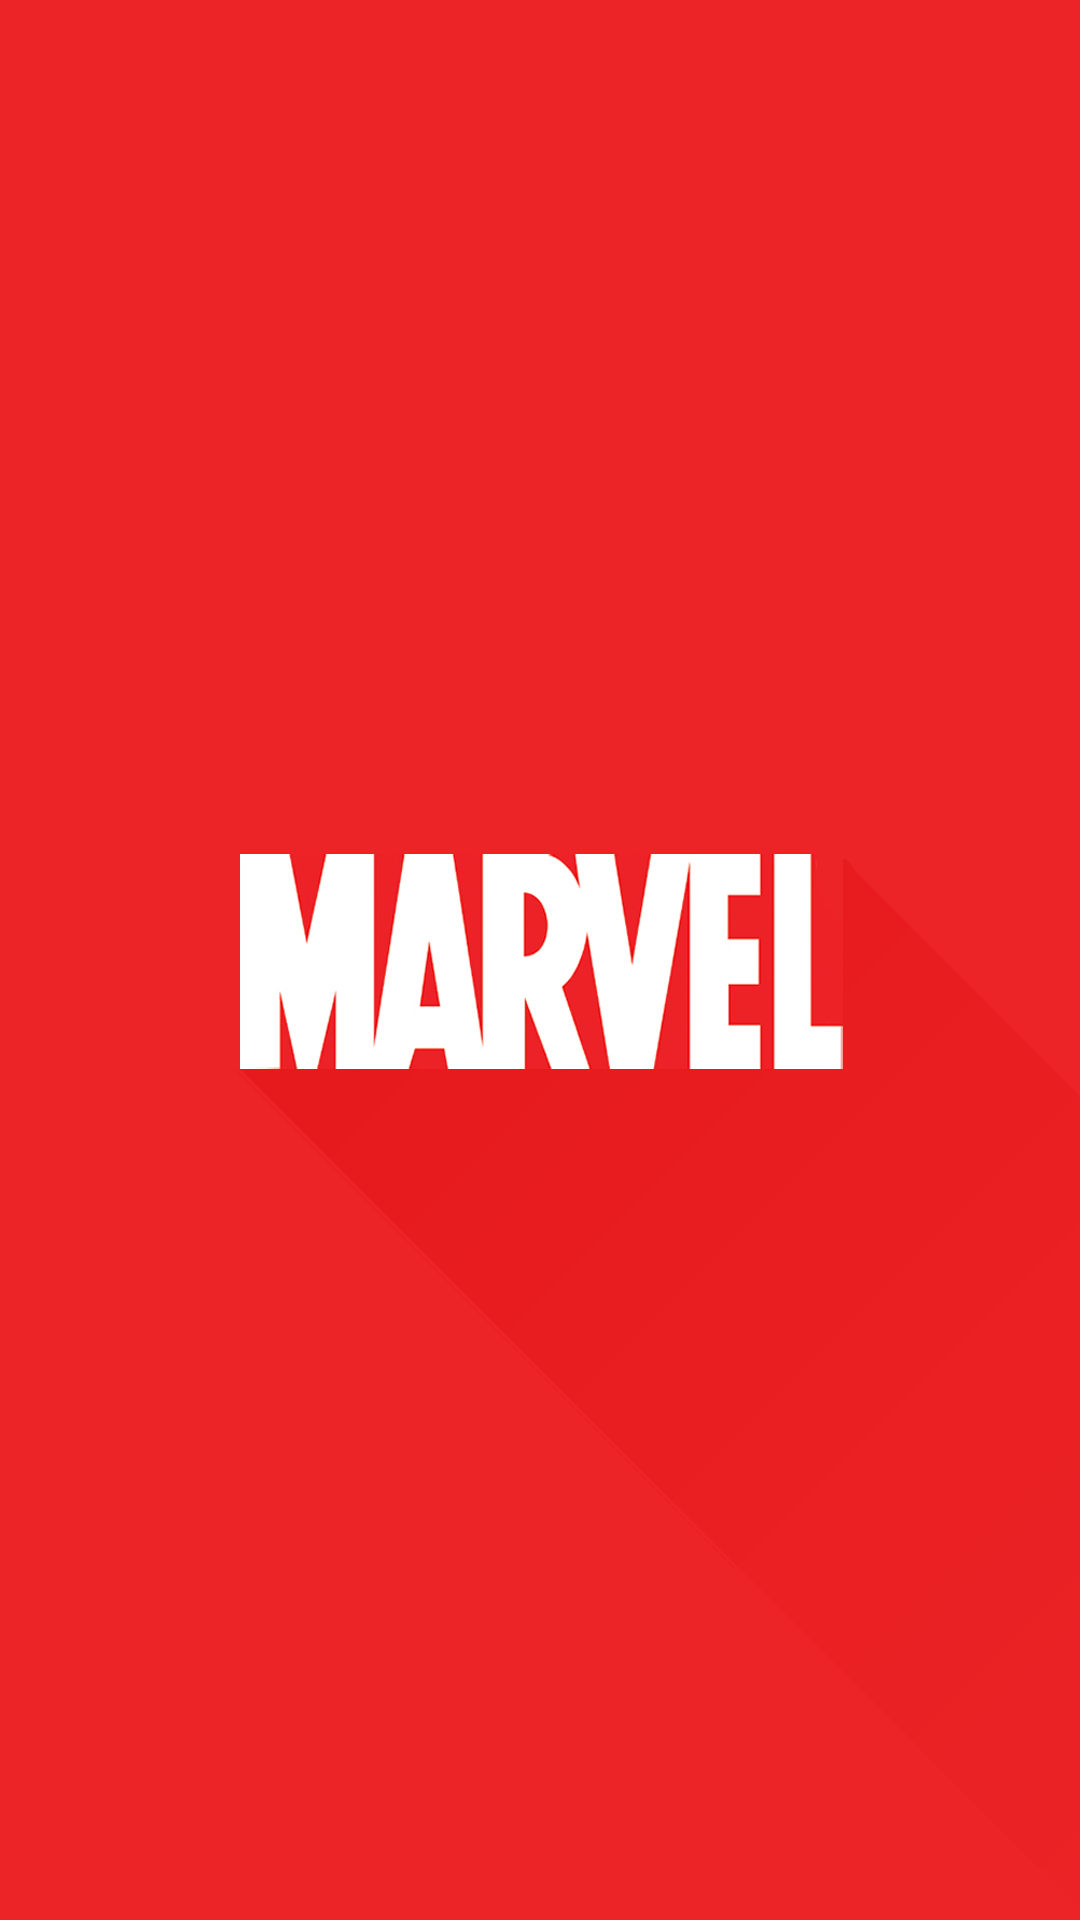 Marvel Wallpapers Iphone Background » Hupages » Download Iphone Wallpa